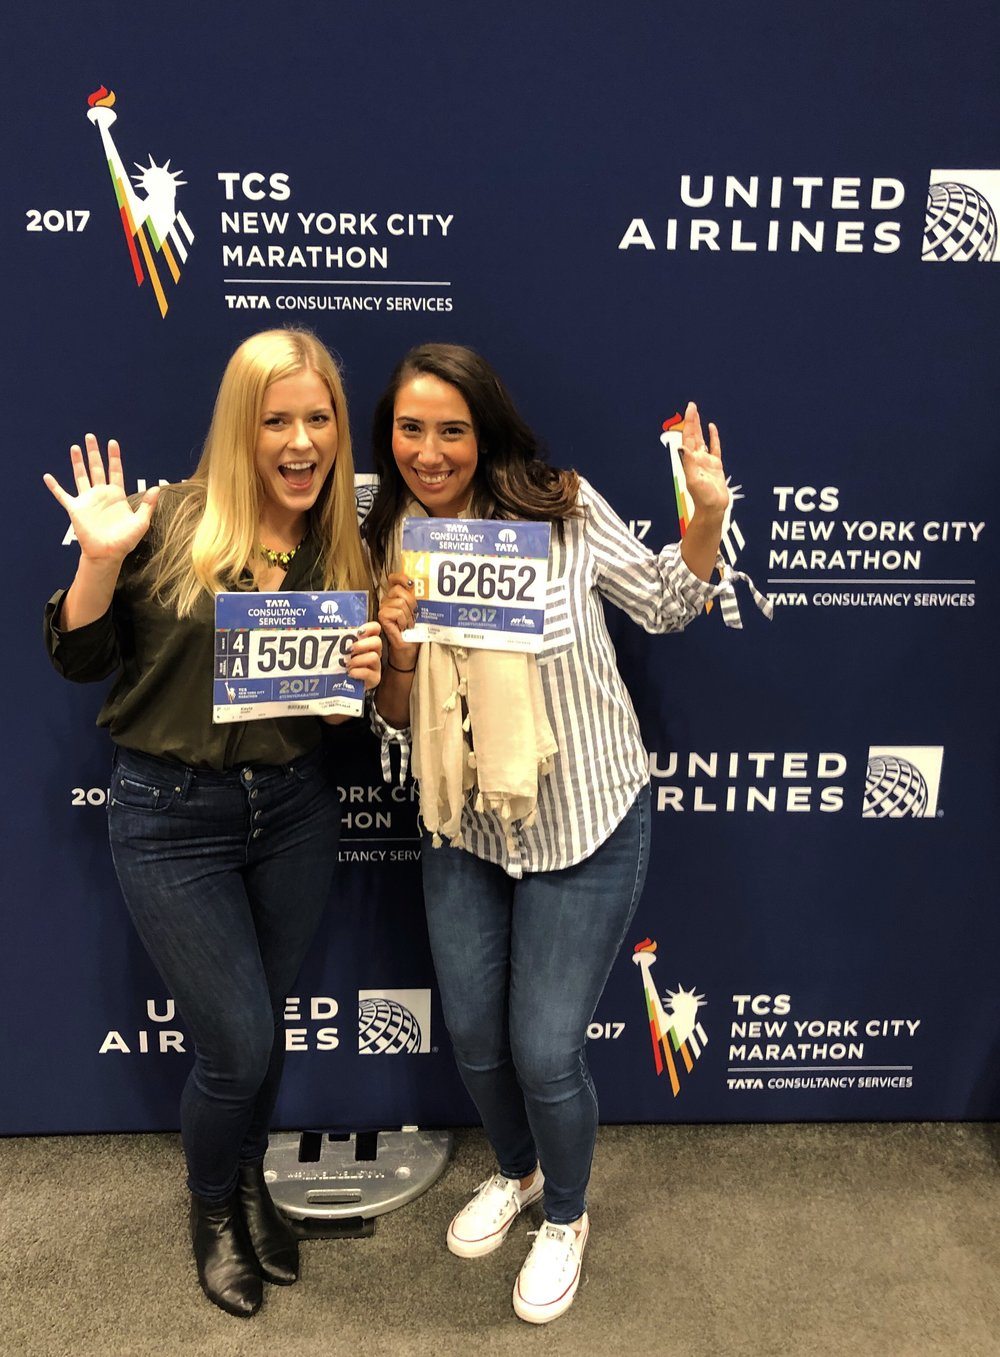 Showing some love to the official marathon sponsor, United Airlines, who took amazing care of us with special access to their weekend events.